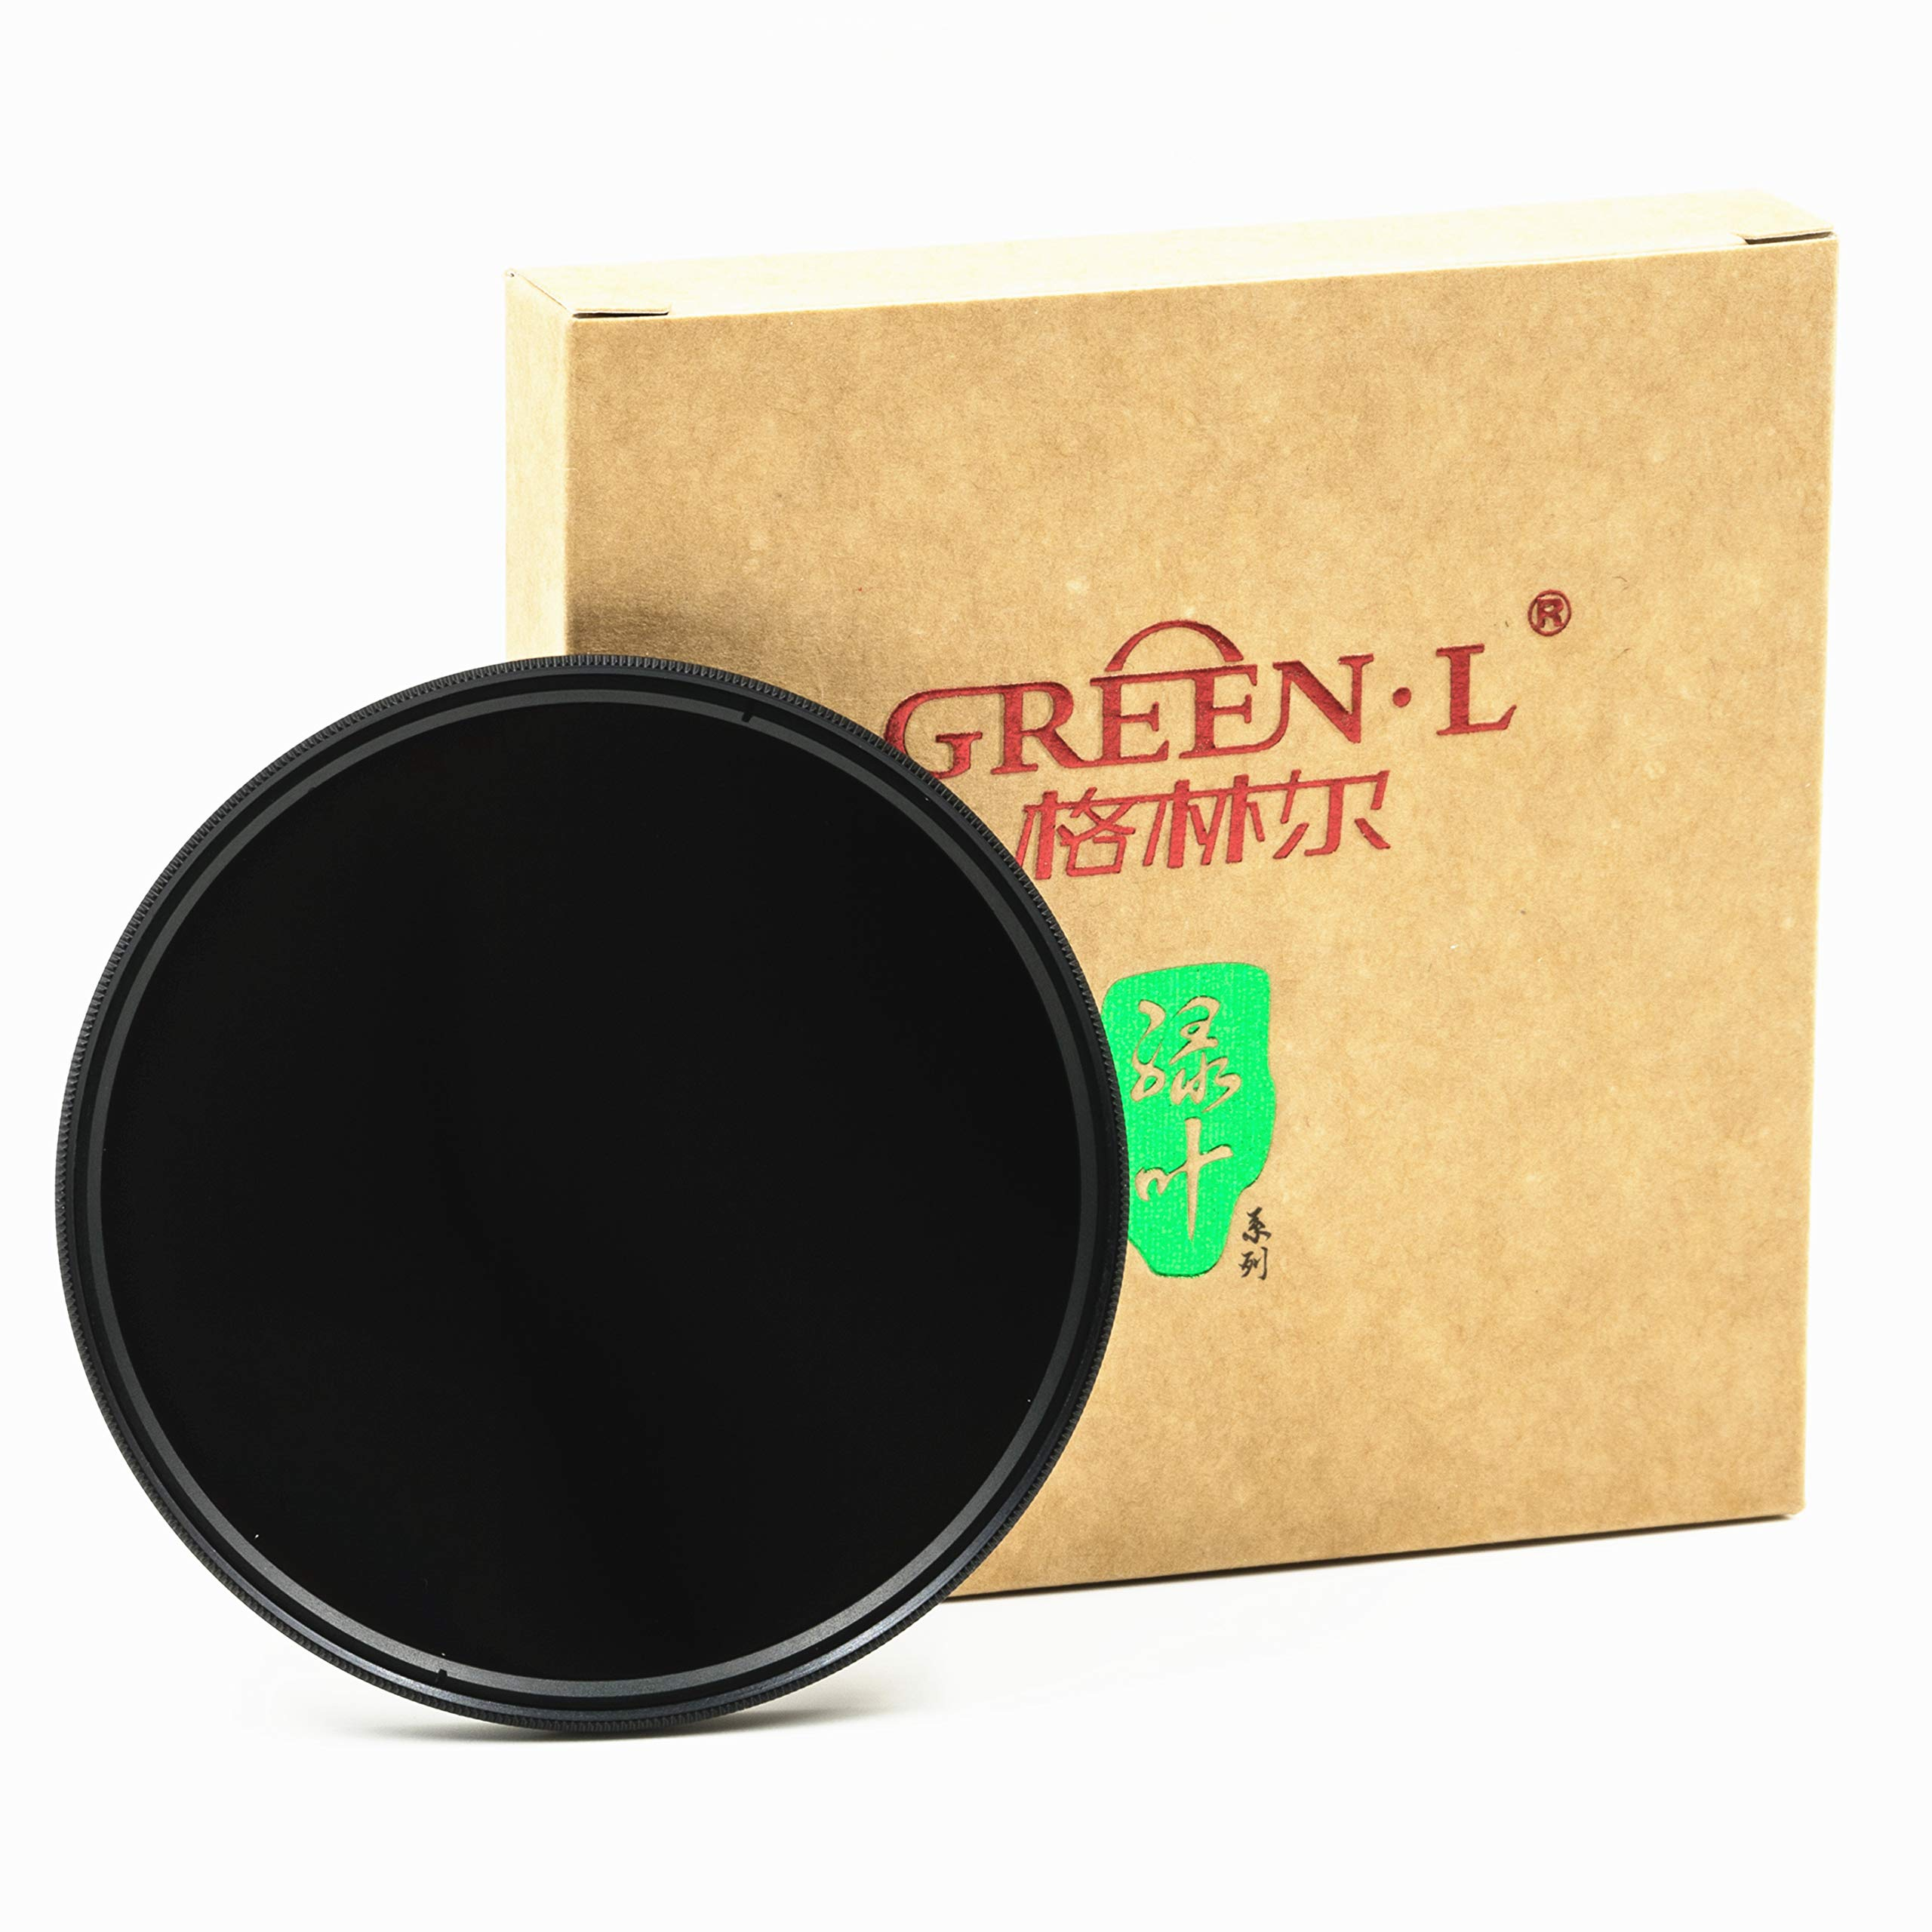 GREEN.L 52mm Neutral Density ND1000 Lens Filter Neutral Density Optical Glass 10 stop ND 1000 52 mm by Green-L